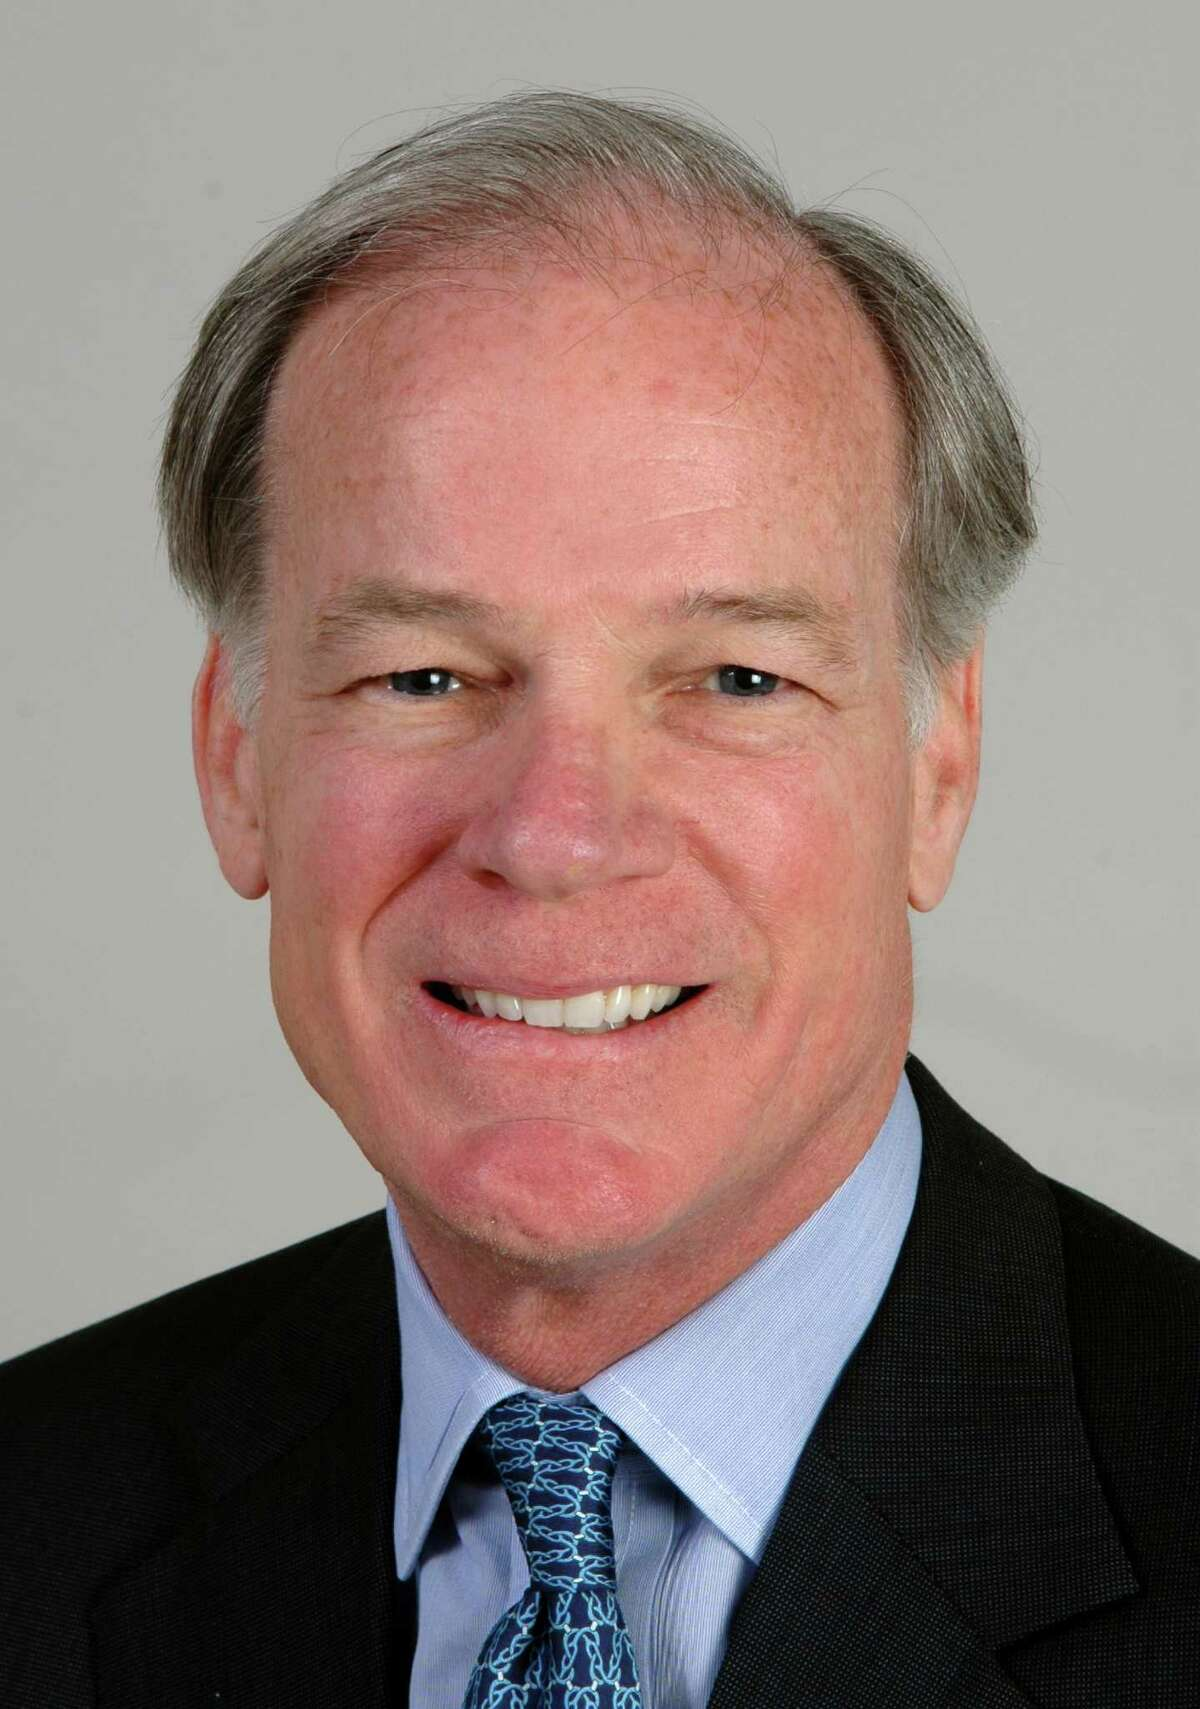 Republican Tom Foley will seek to reprise his matchup with Democrat Dannel P. Malloy in the Connecticut governor's race in 2014. Foley will announce his candidacy for his party's nomination in Bridgeport Tuesday Sept. 10, 2013.